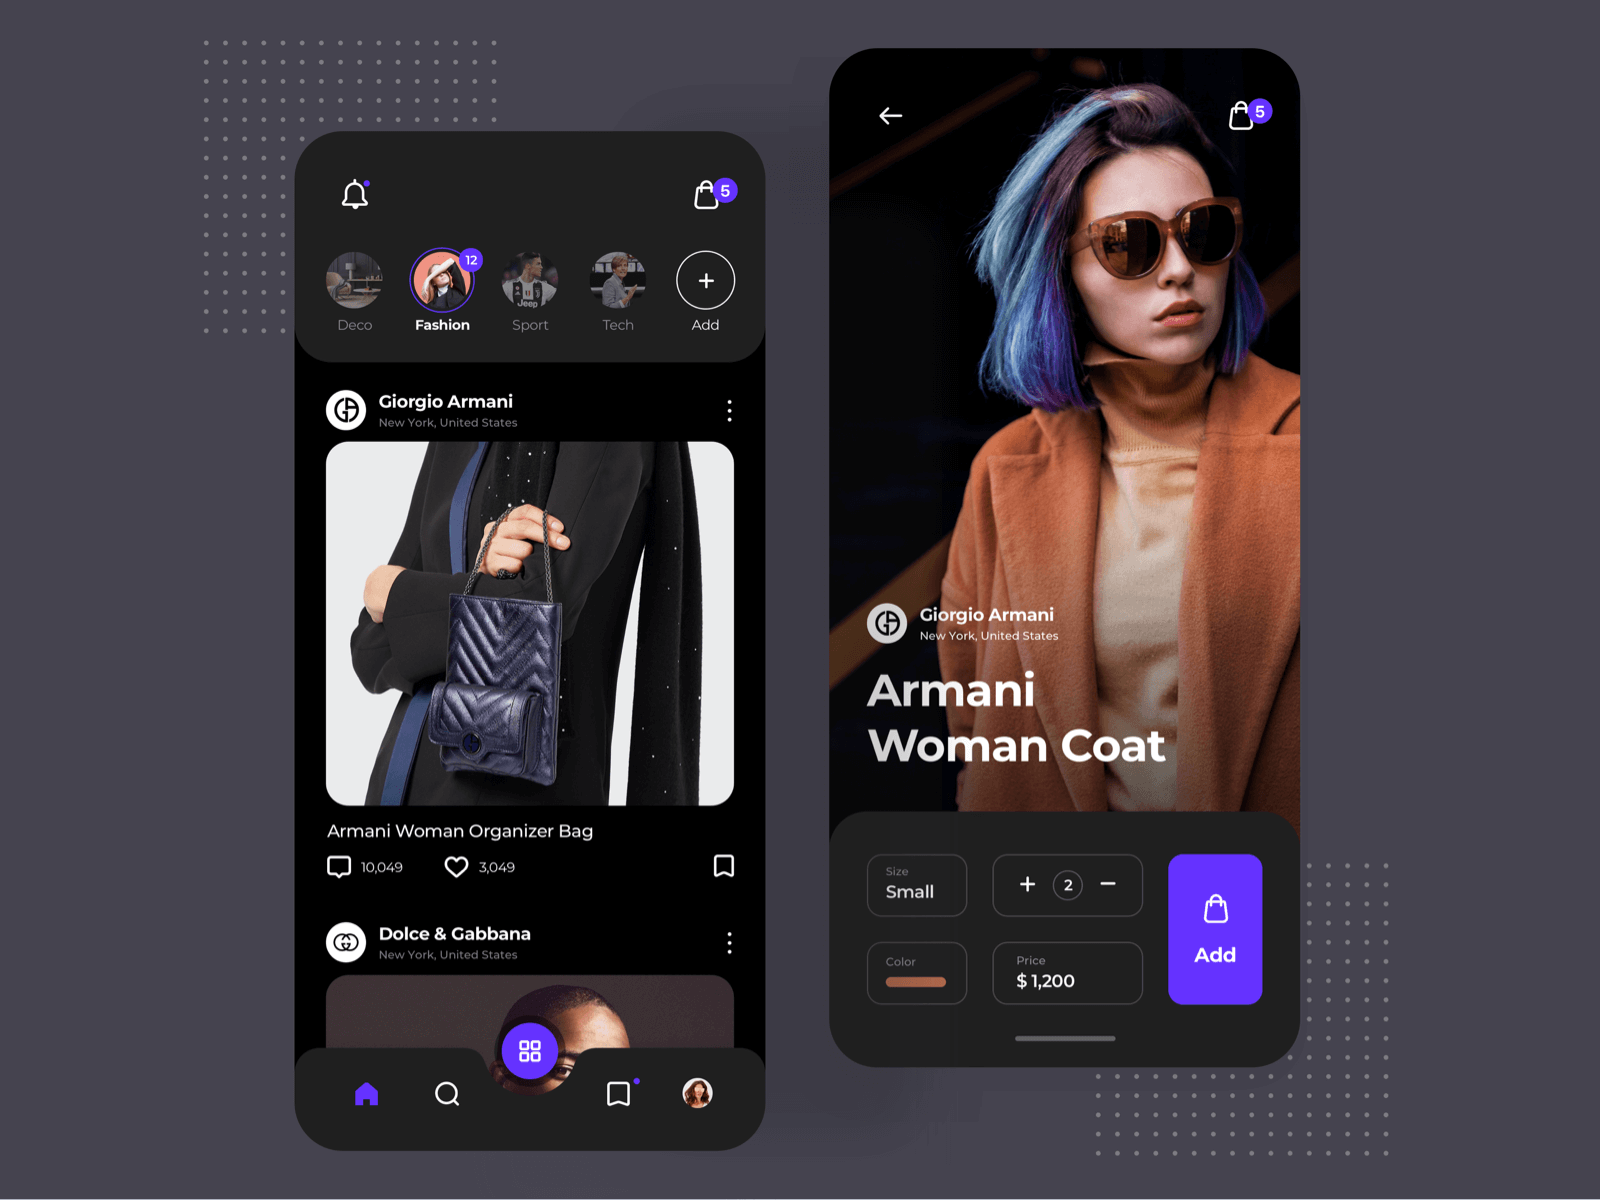 App design for a fashion app on iPhone